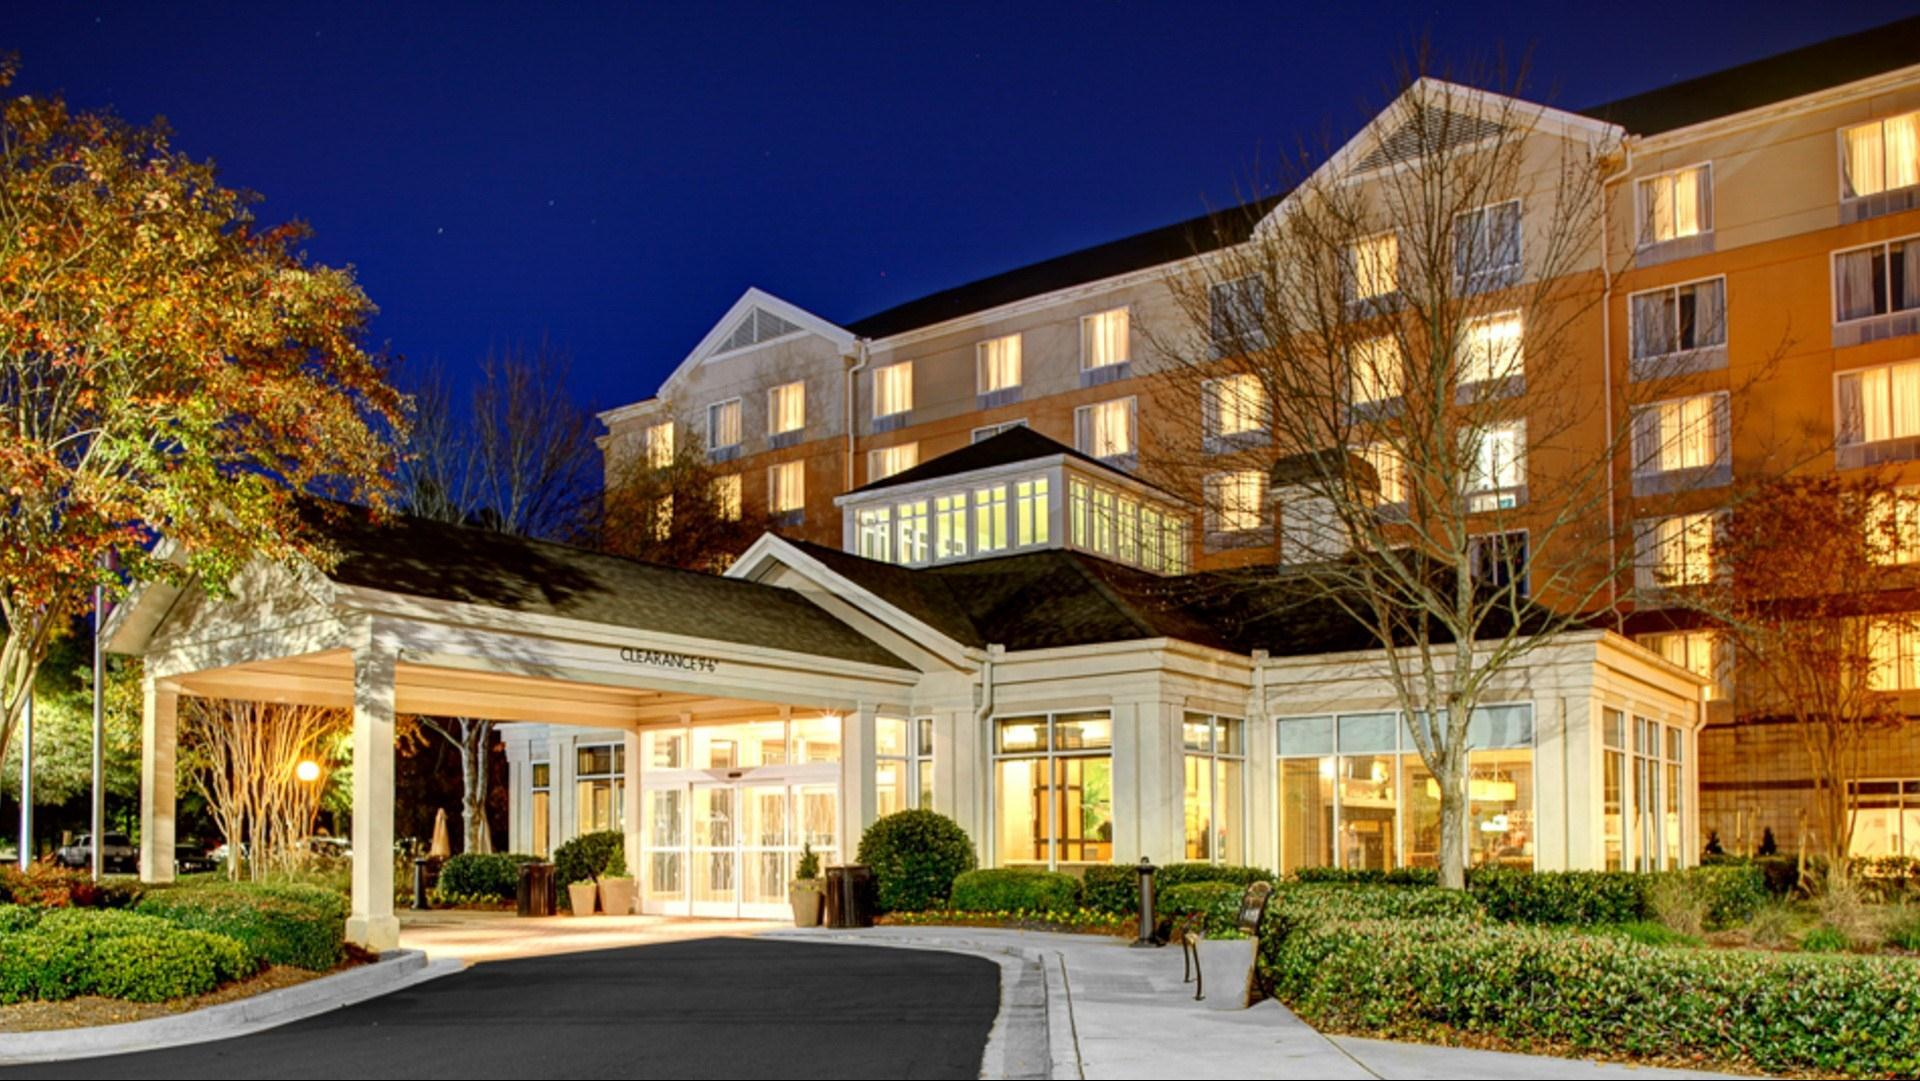 Meetings and Events at Hilton Garden Inn Atlanta North/Alpharetta ...